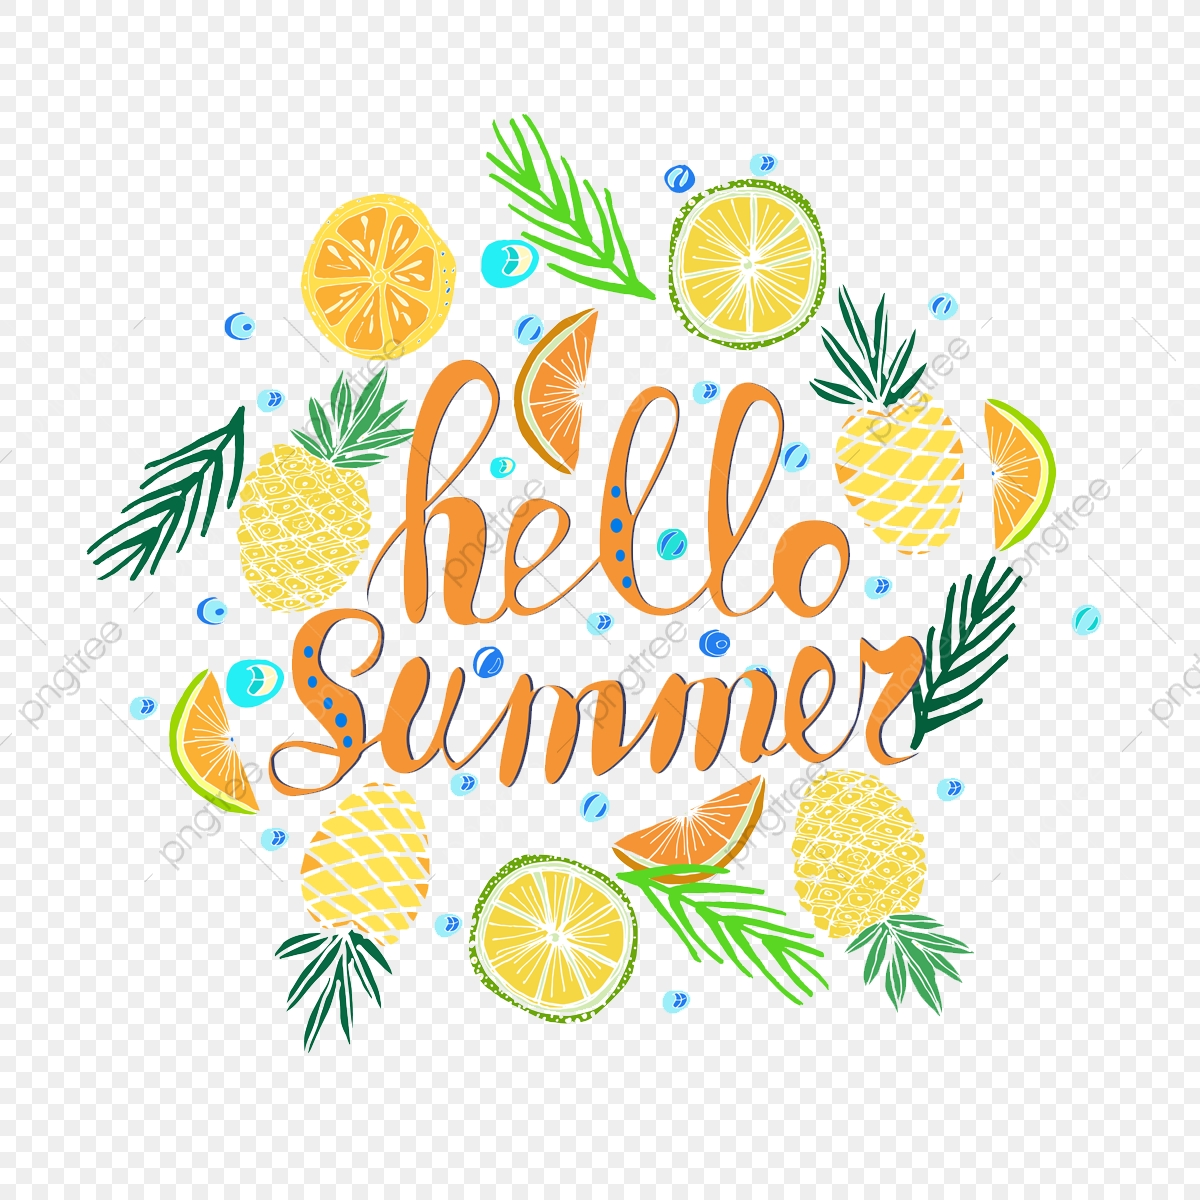 Hello Summer Png - Hand Written Phrase Hello Summer, Png, Tropical Background ...